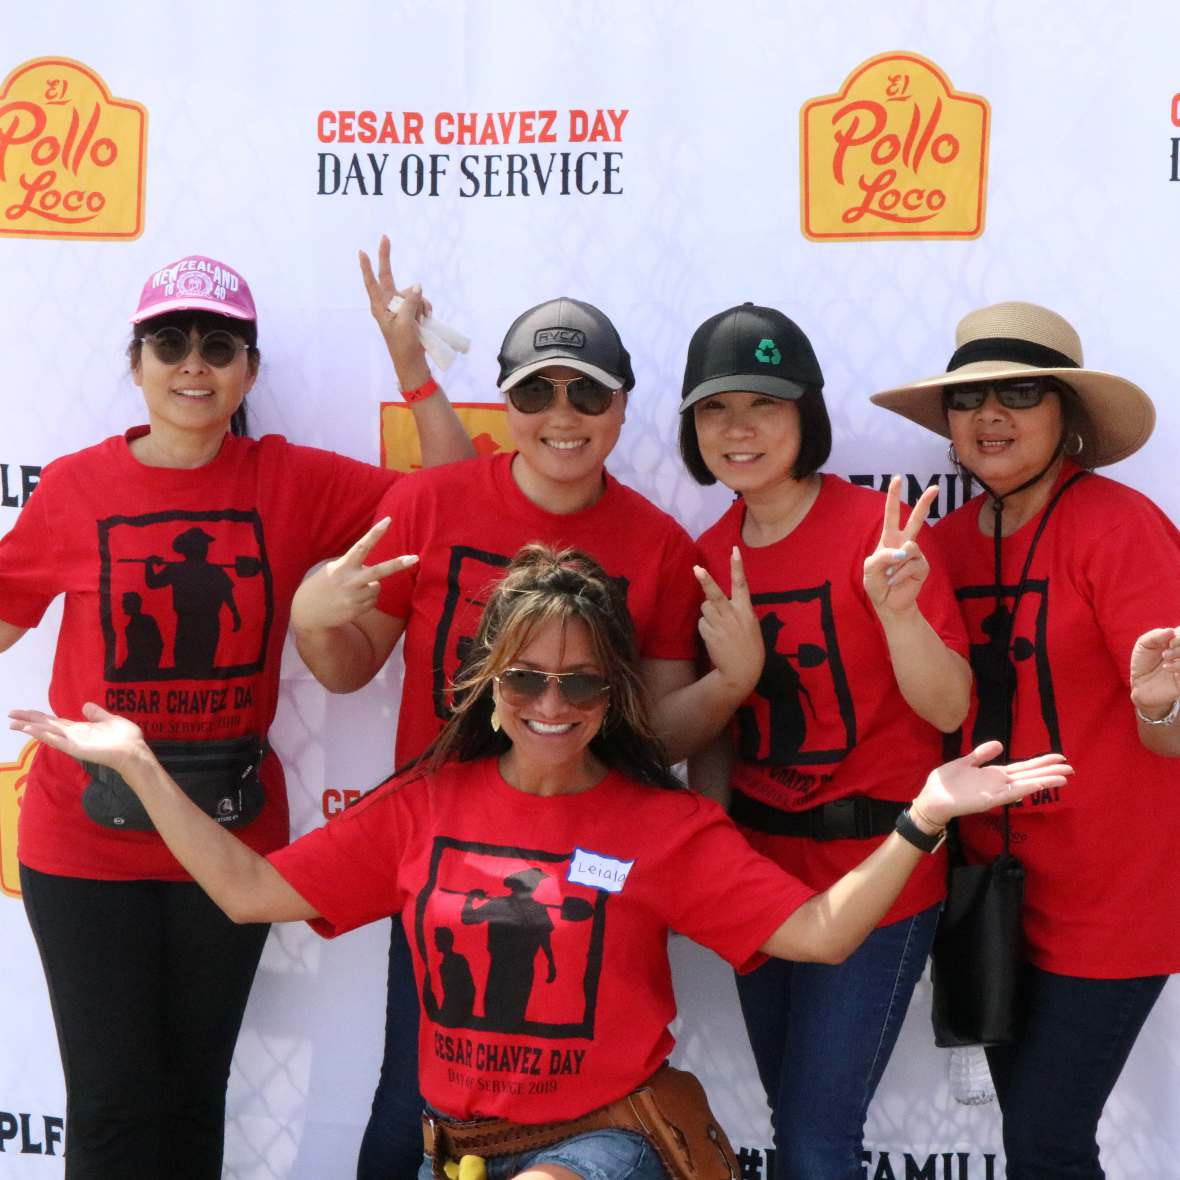 El Pollo Loco volunteer employees at an outdoor event.